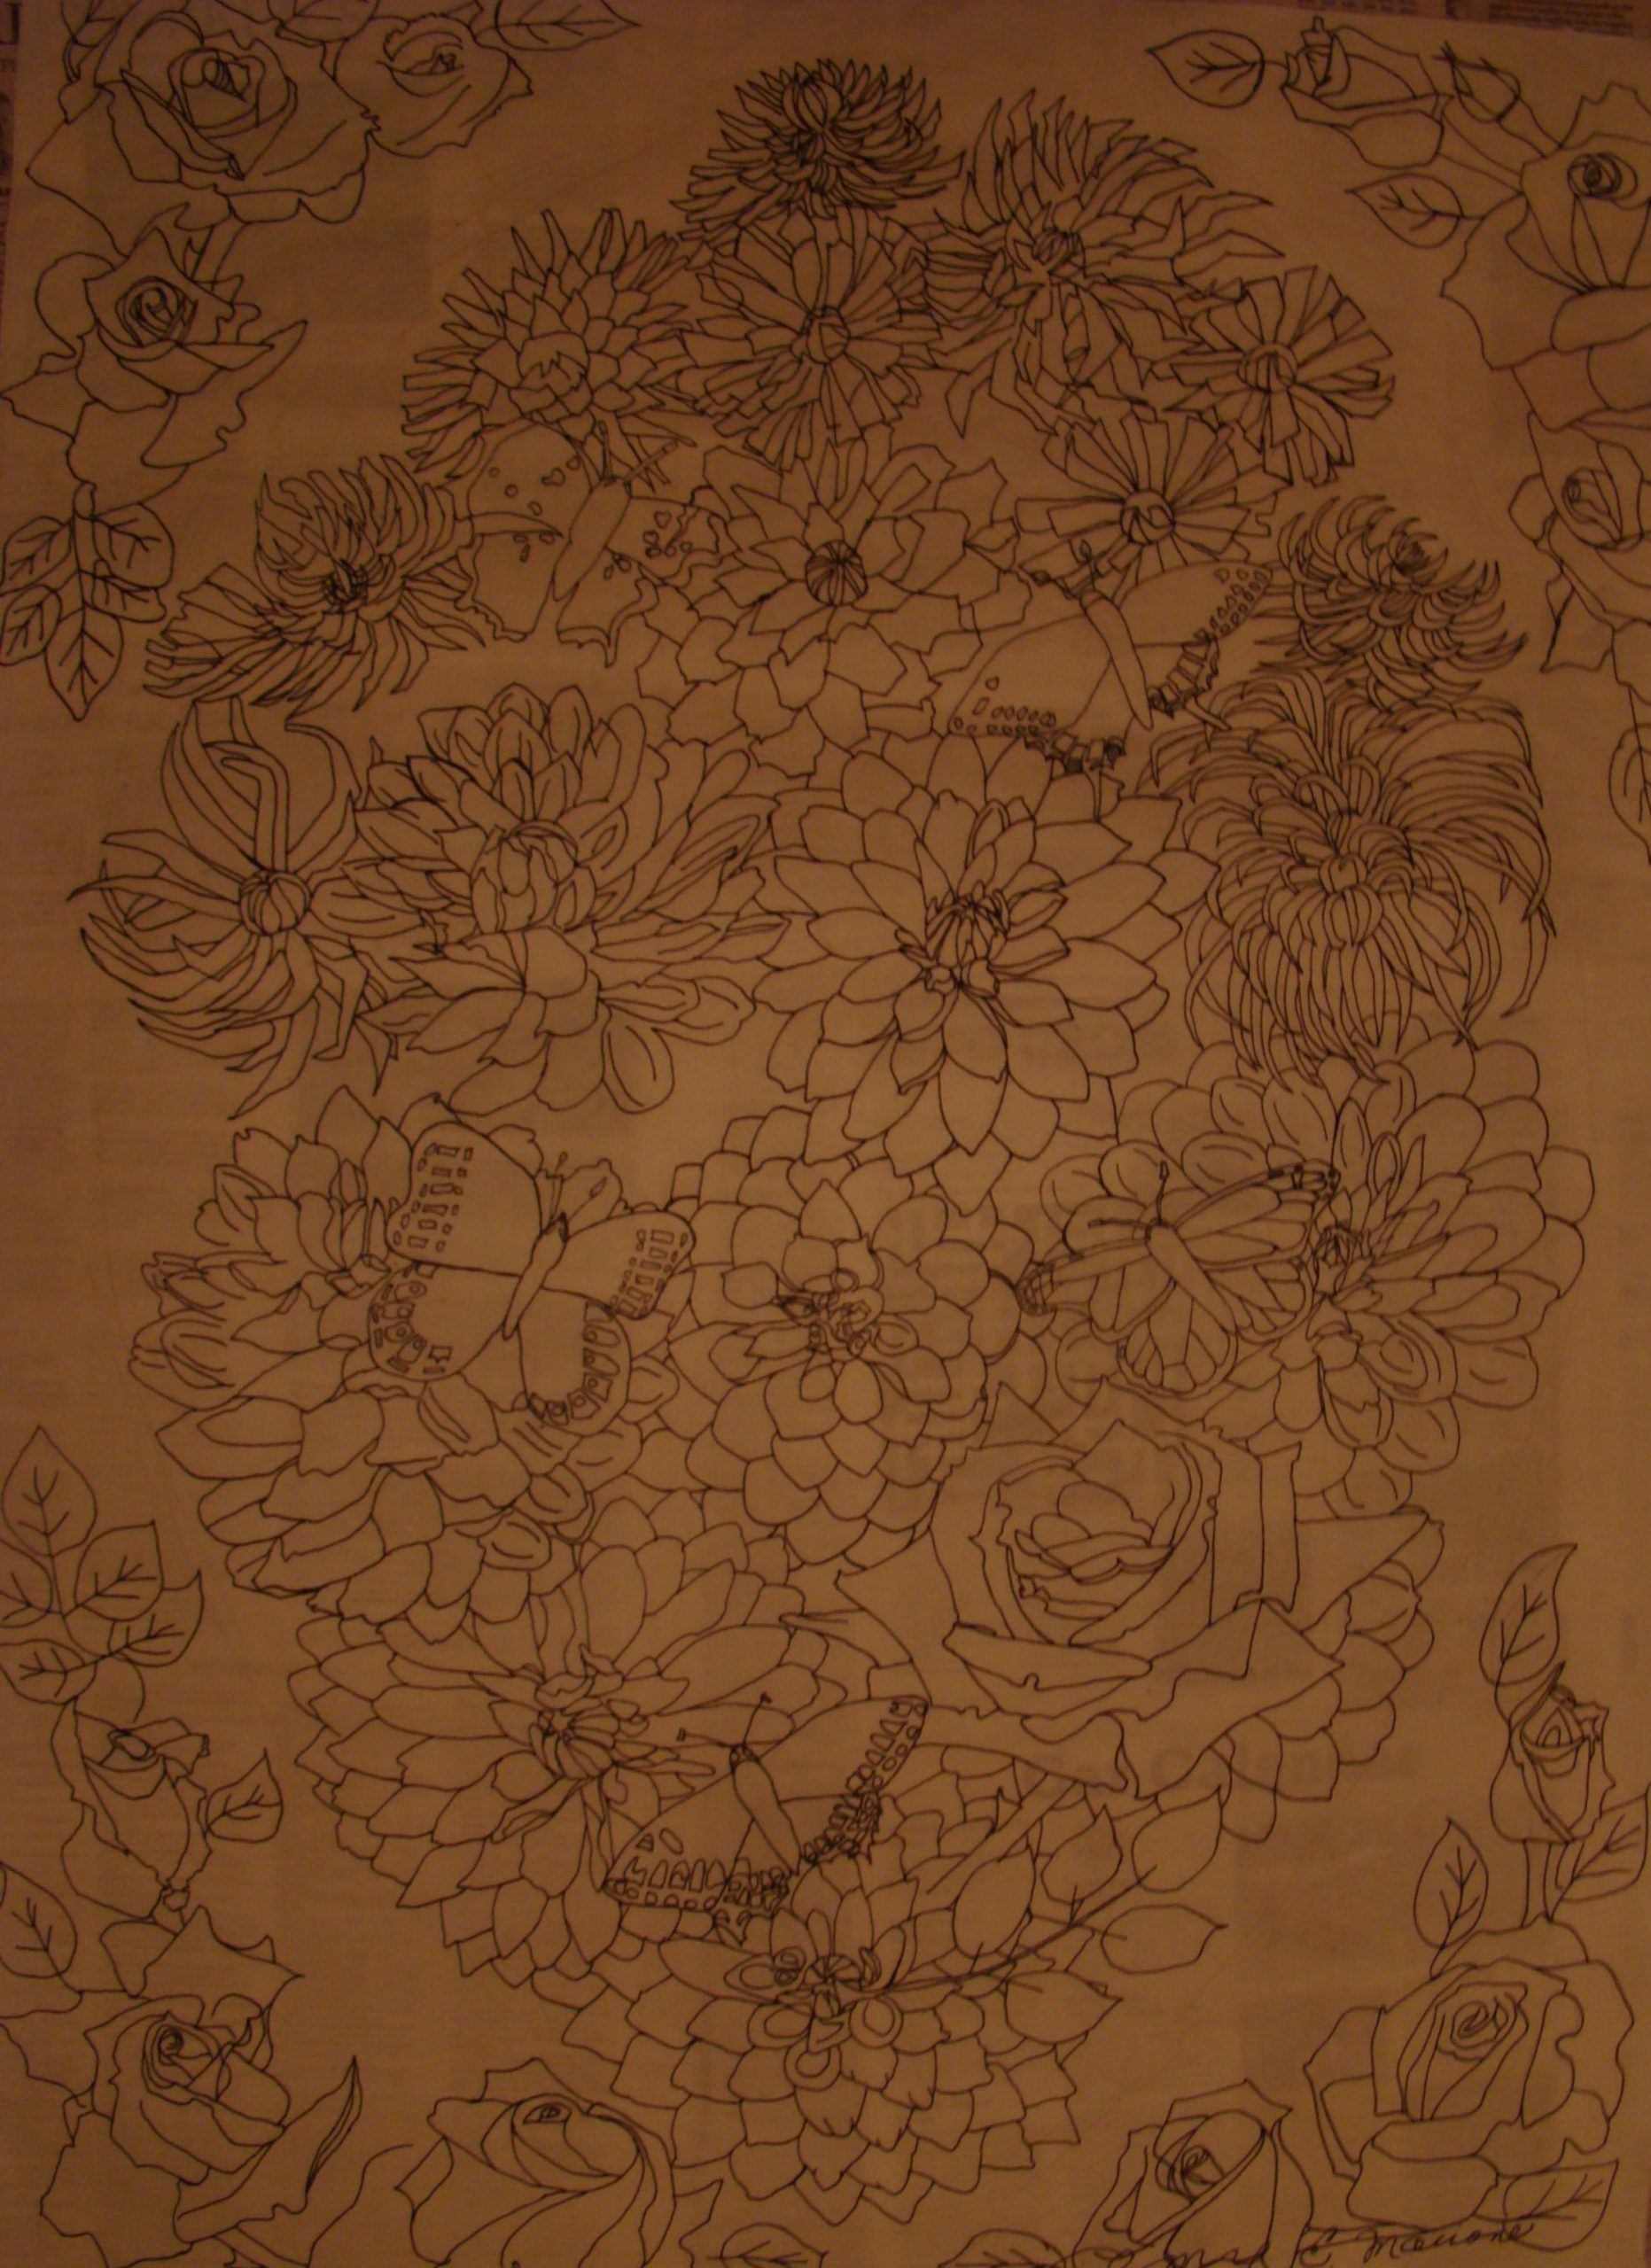 Oval of Flowers, ink on mulberry rice paper